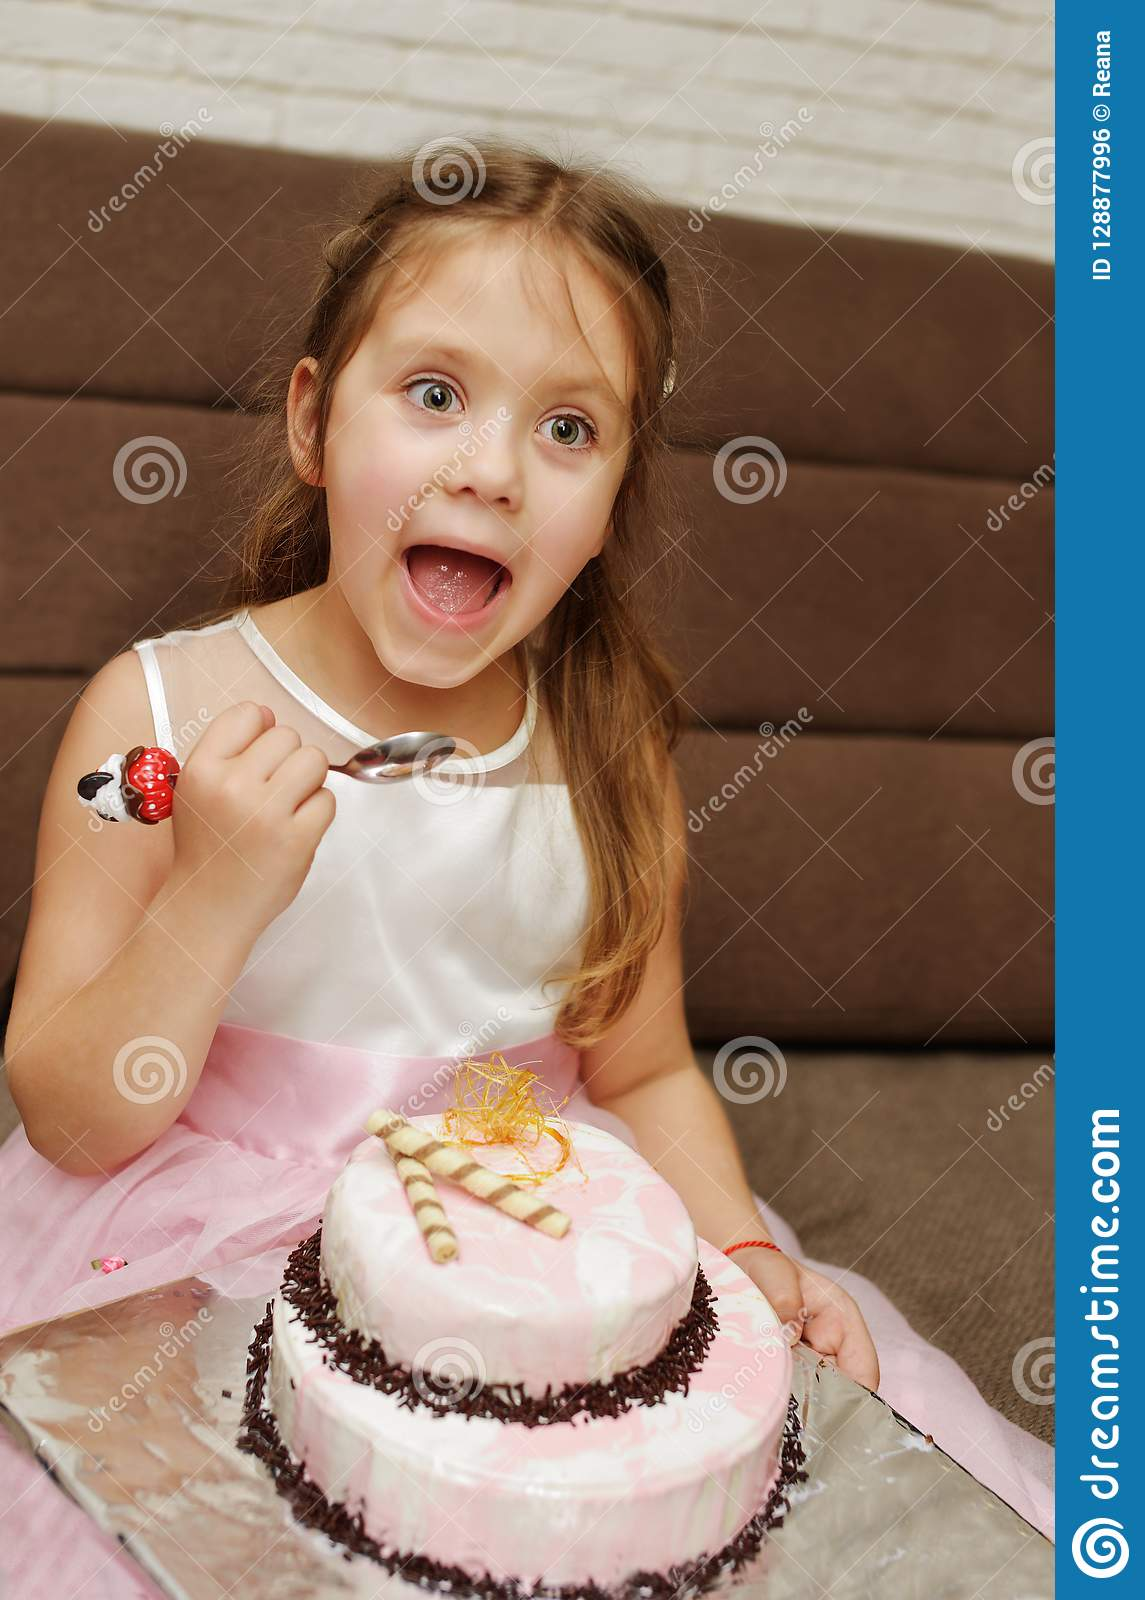 Strange Girl Eating Birthday Cake Stock Photo Image Of Color 128877996 Personalised Birthday Cards Petedlily Jamesorg